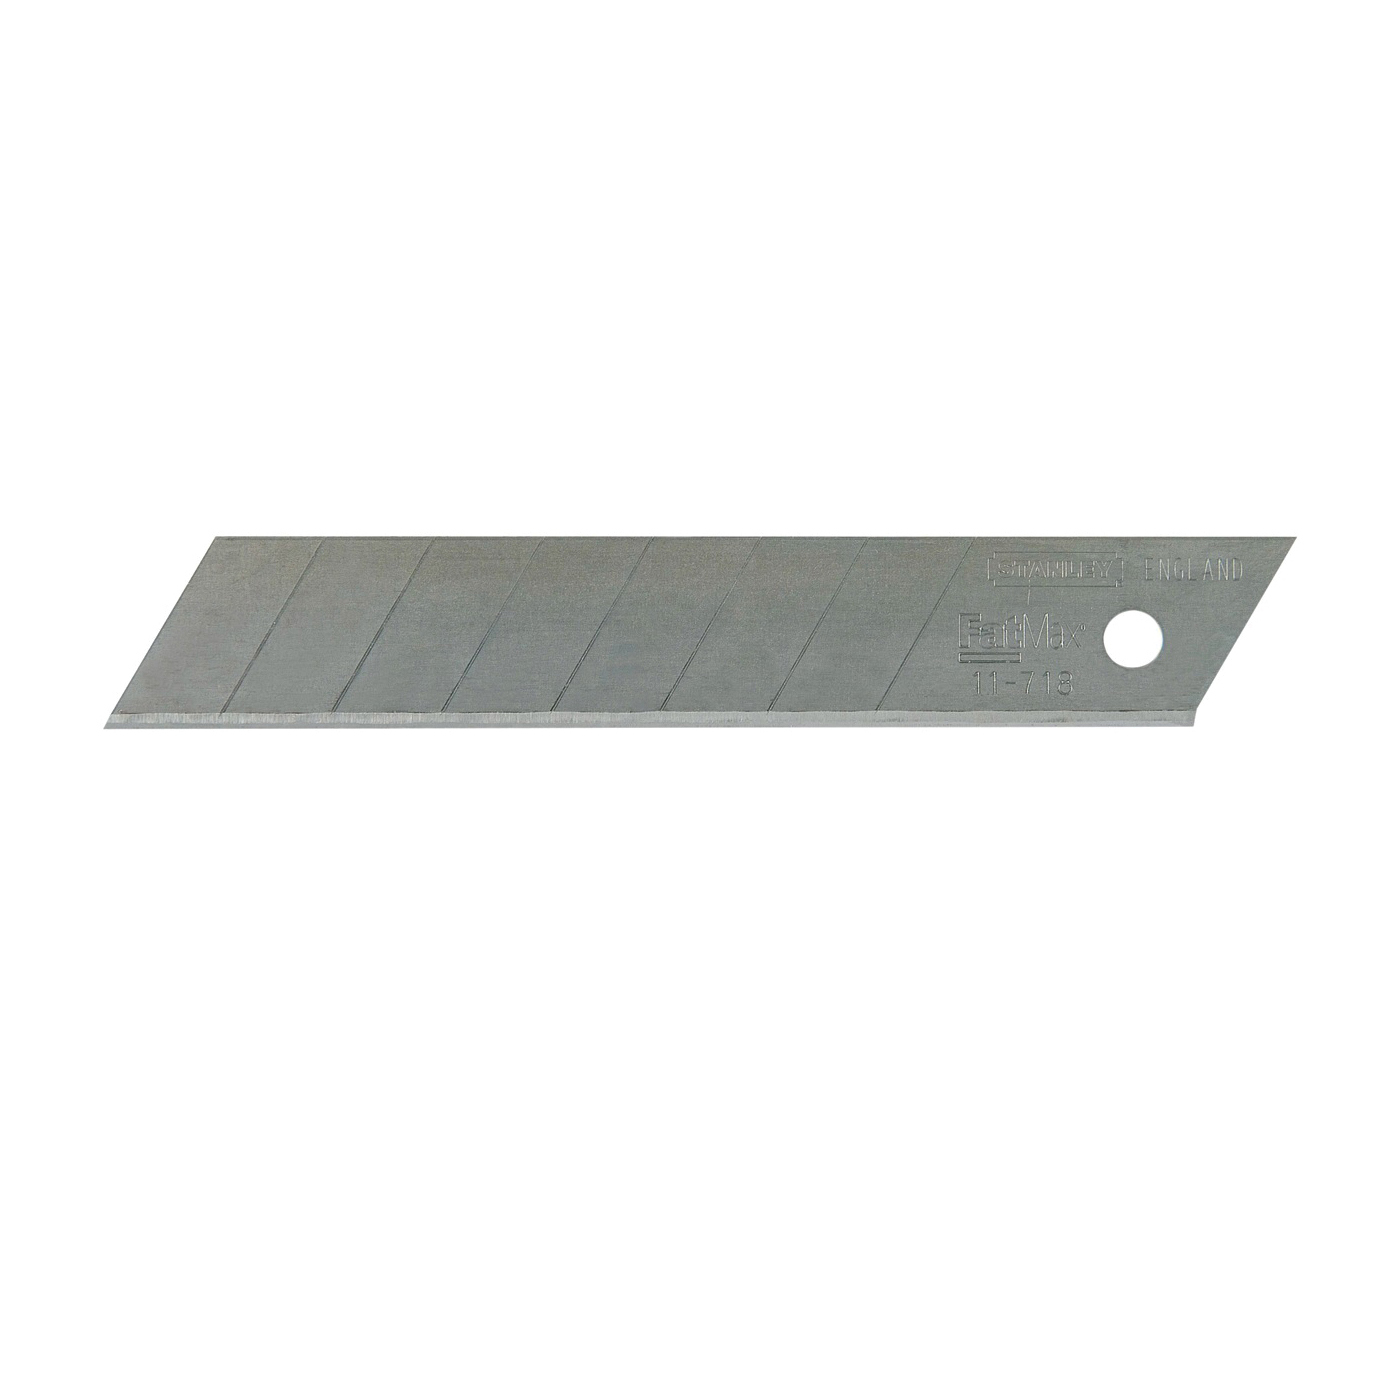 Picture of STANLEY 11-718 Knife Blade, 18 mm, 4-1/4 in L, Carbon Steel, 8 -Point, 5/PK, Pack